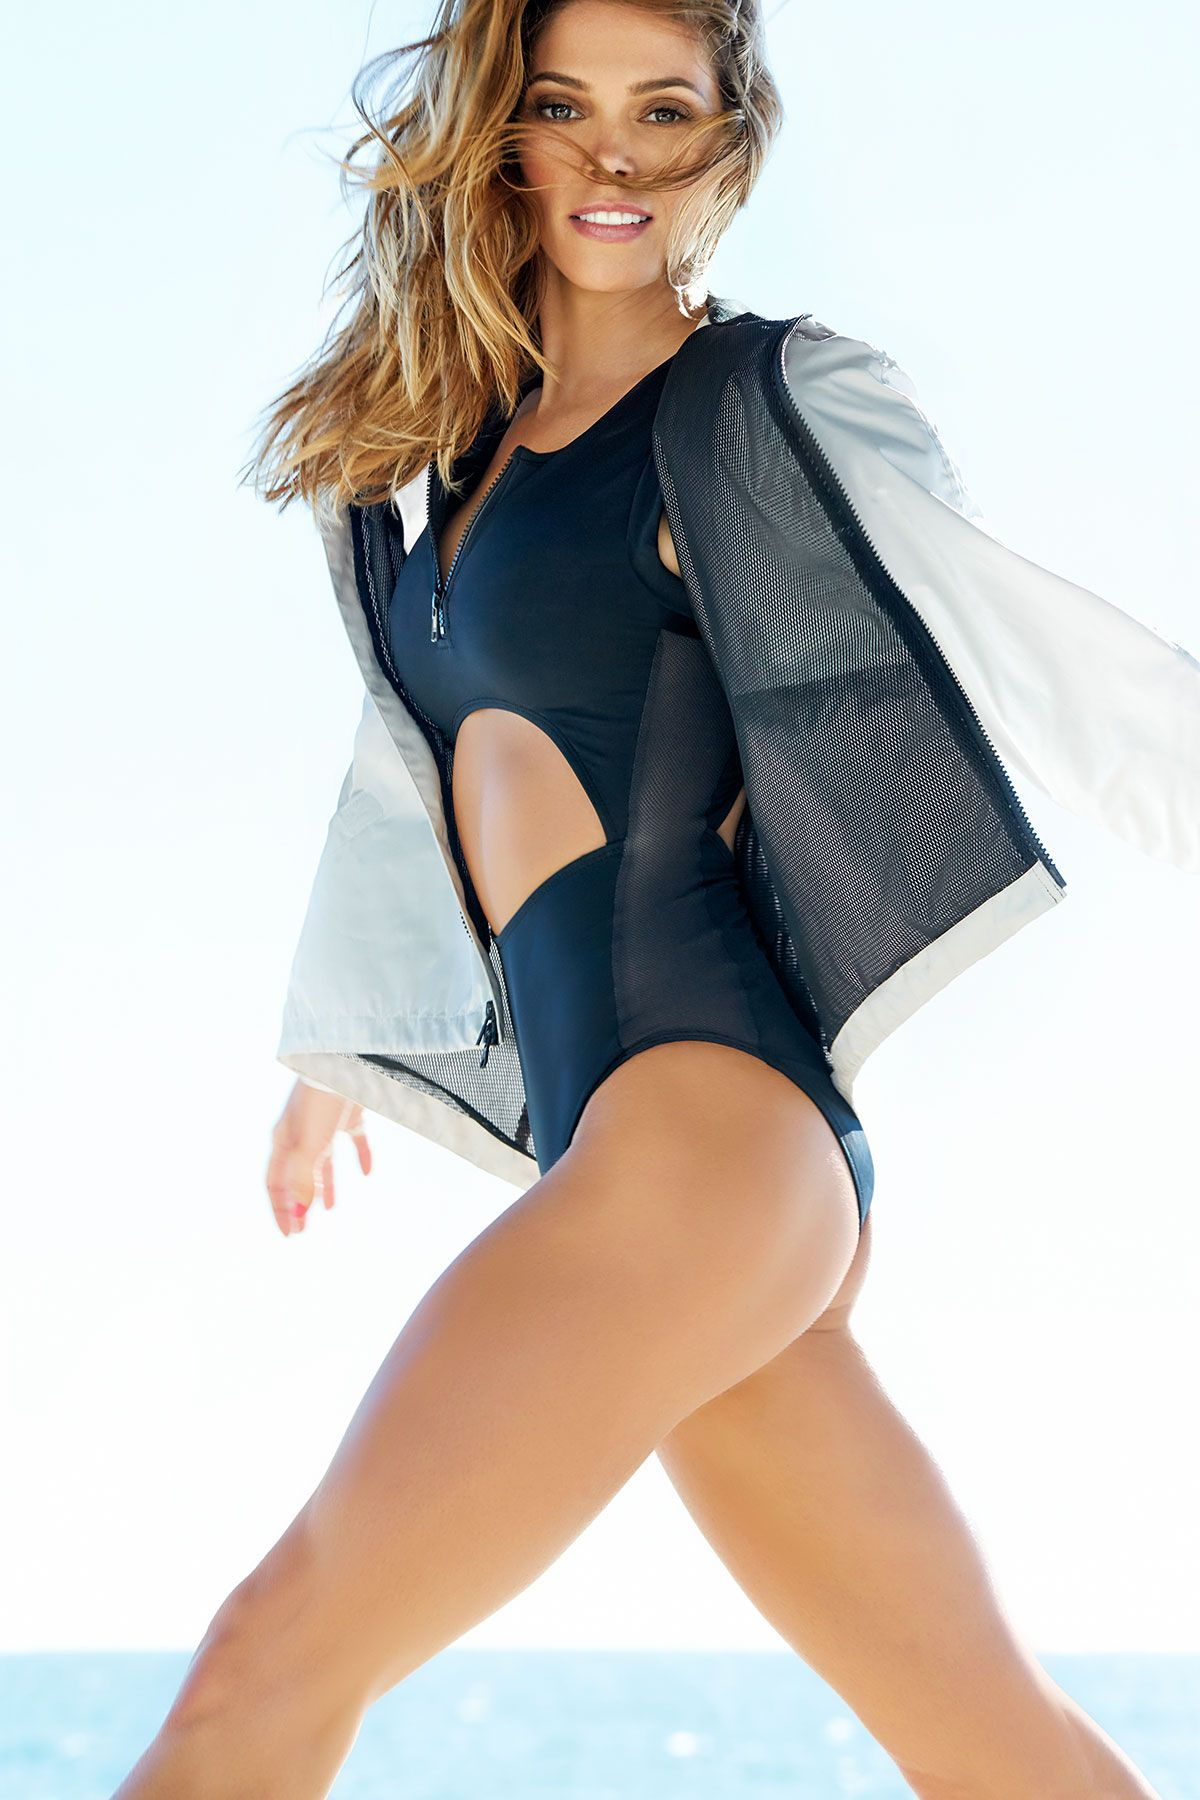 41710b1aff2b9 Learn how celeb Ashley Greene got her toned up body, abs included! Discover  her